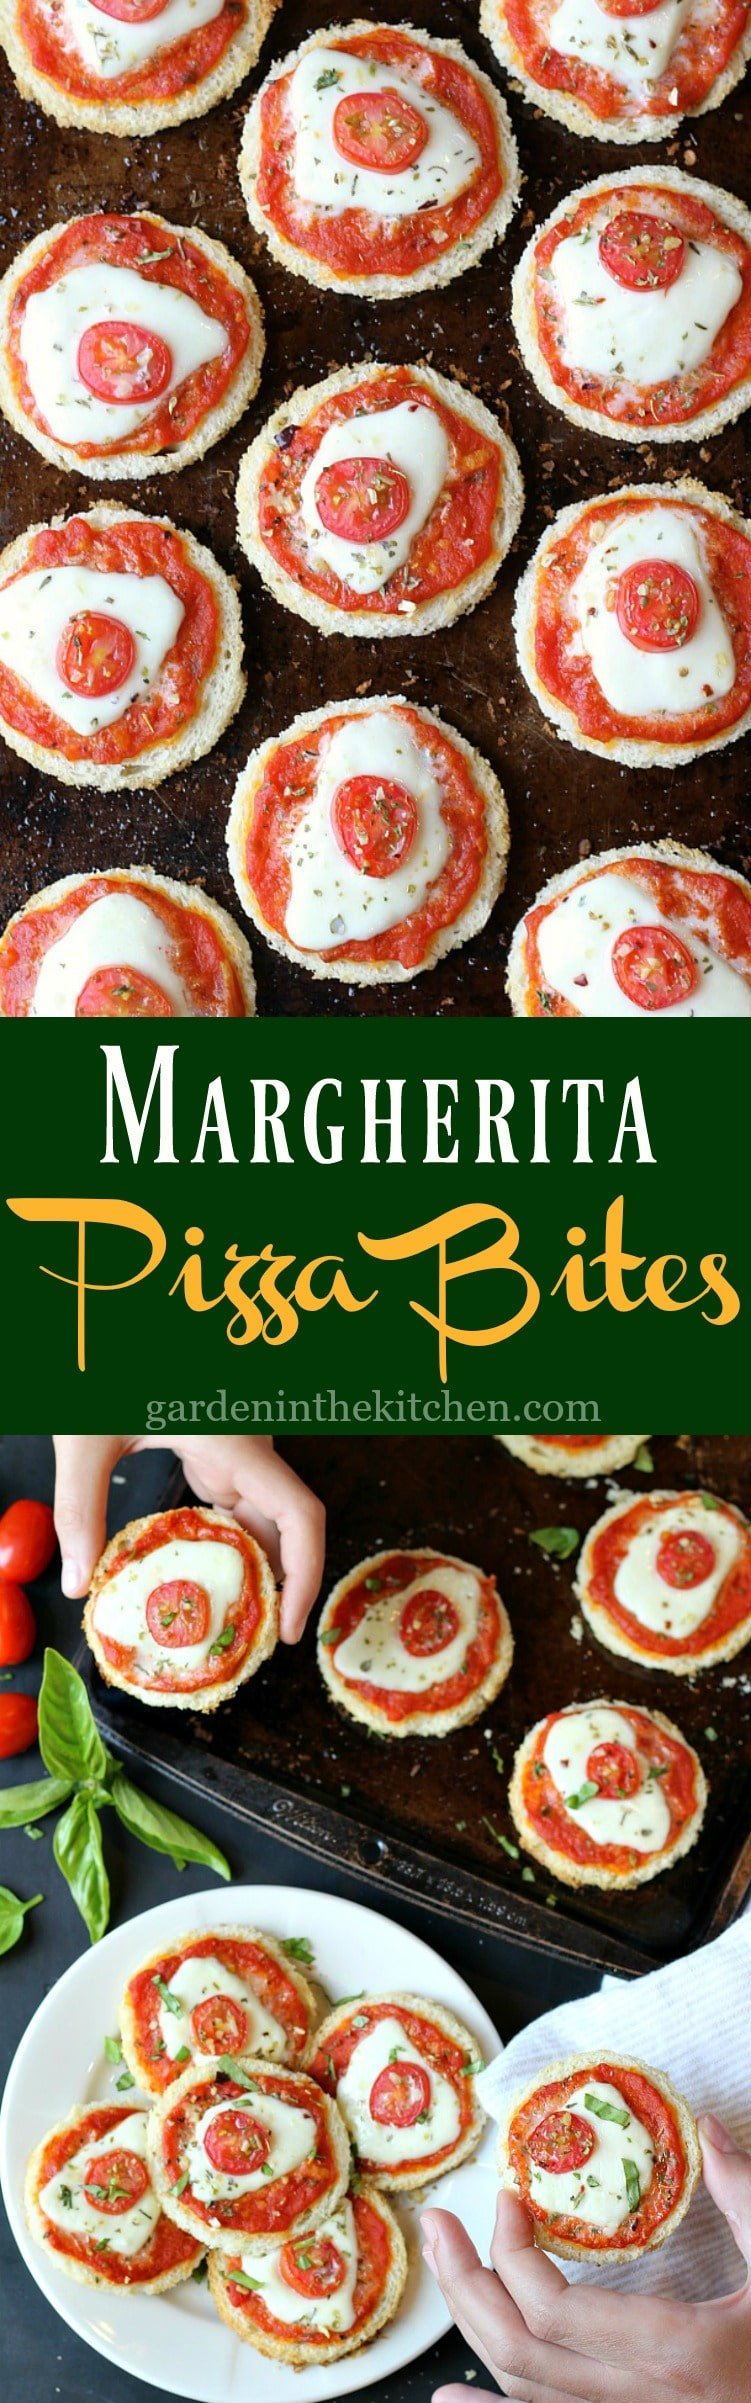 Easy Margherita Pizza Bites